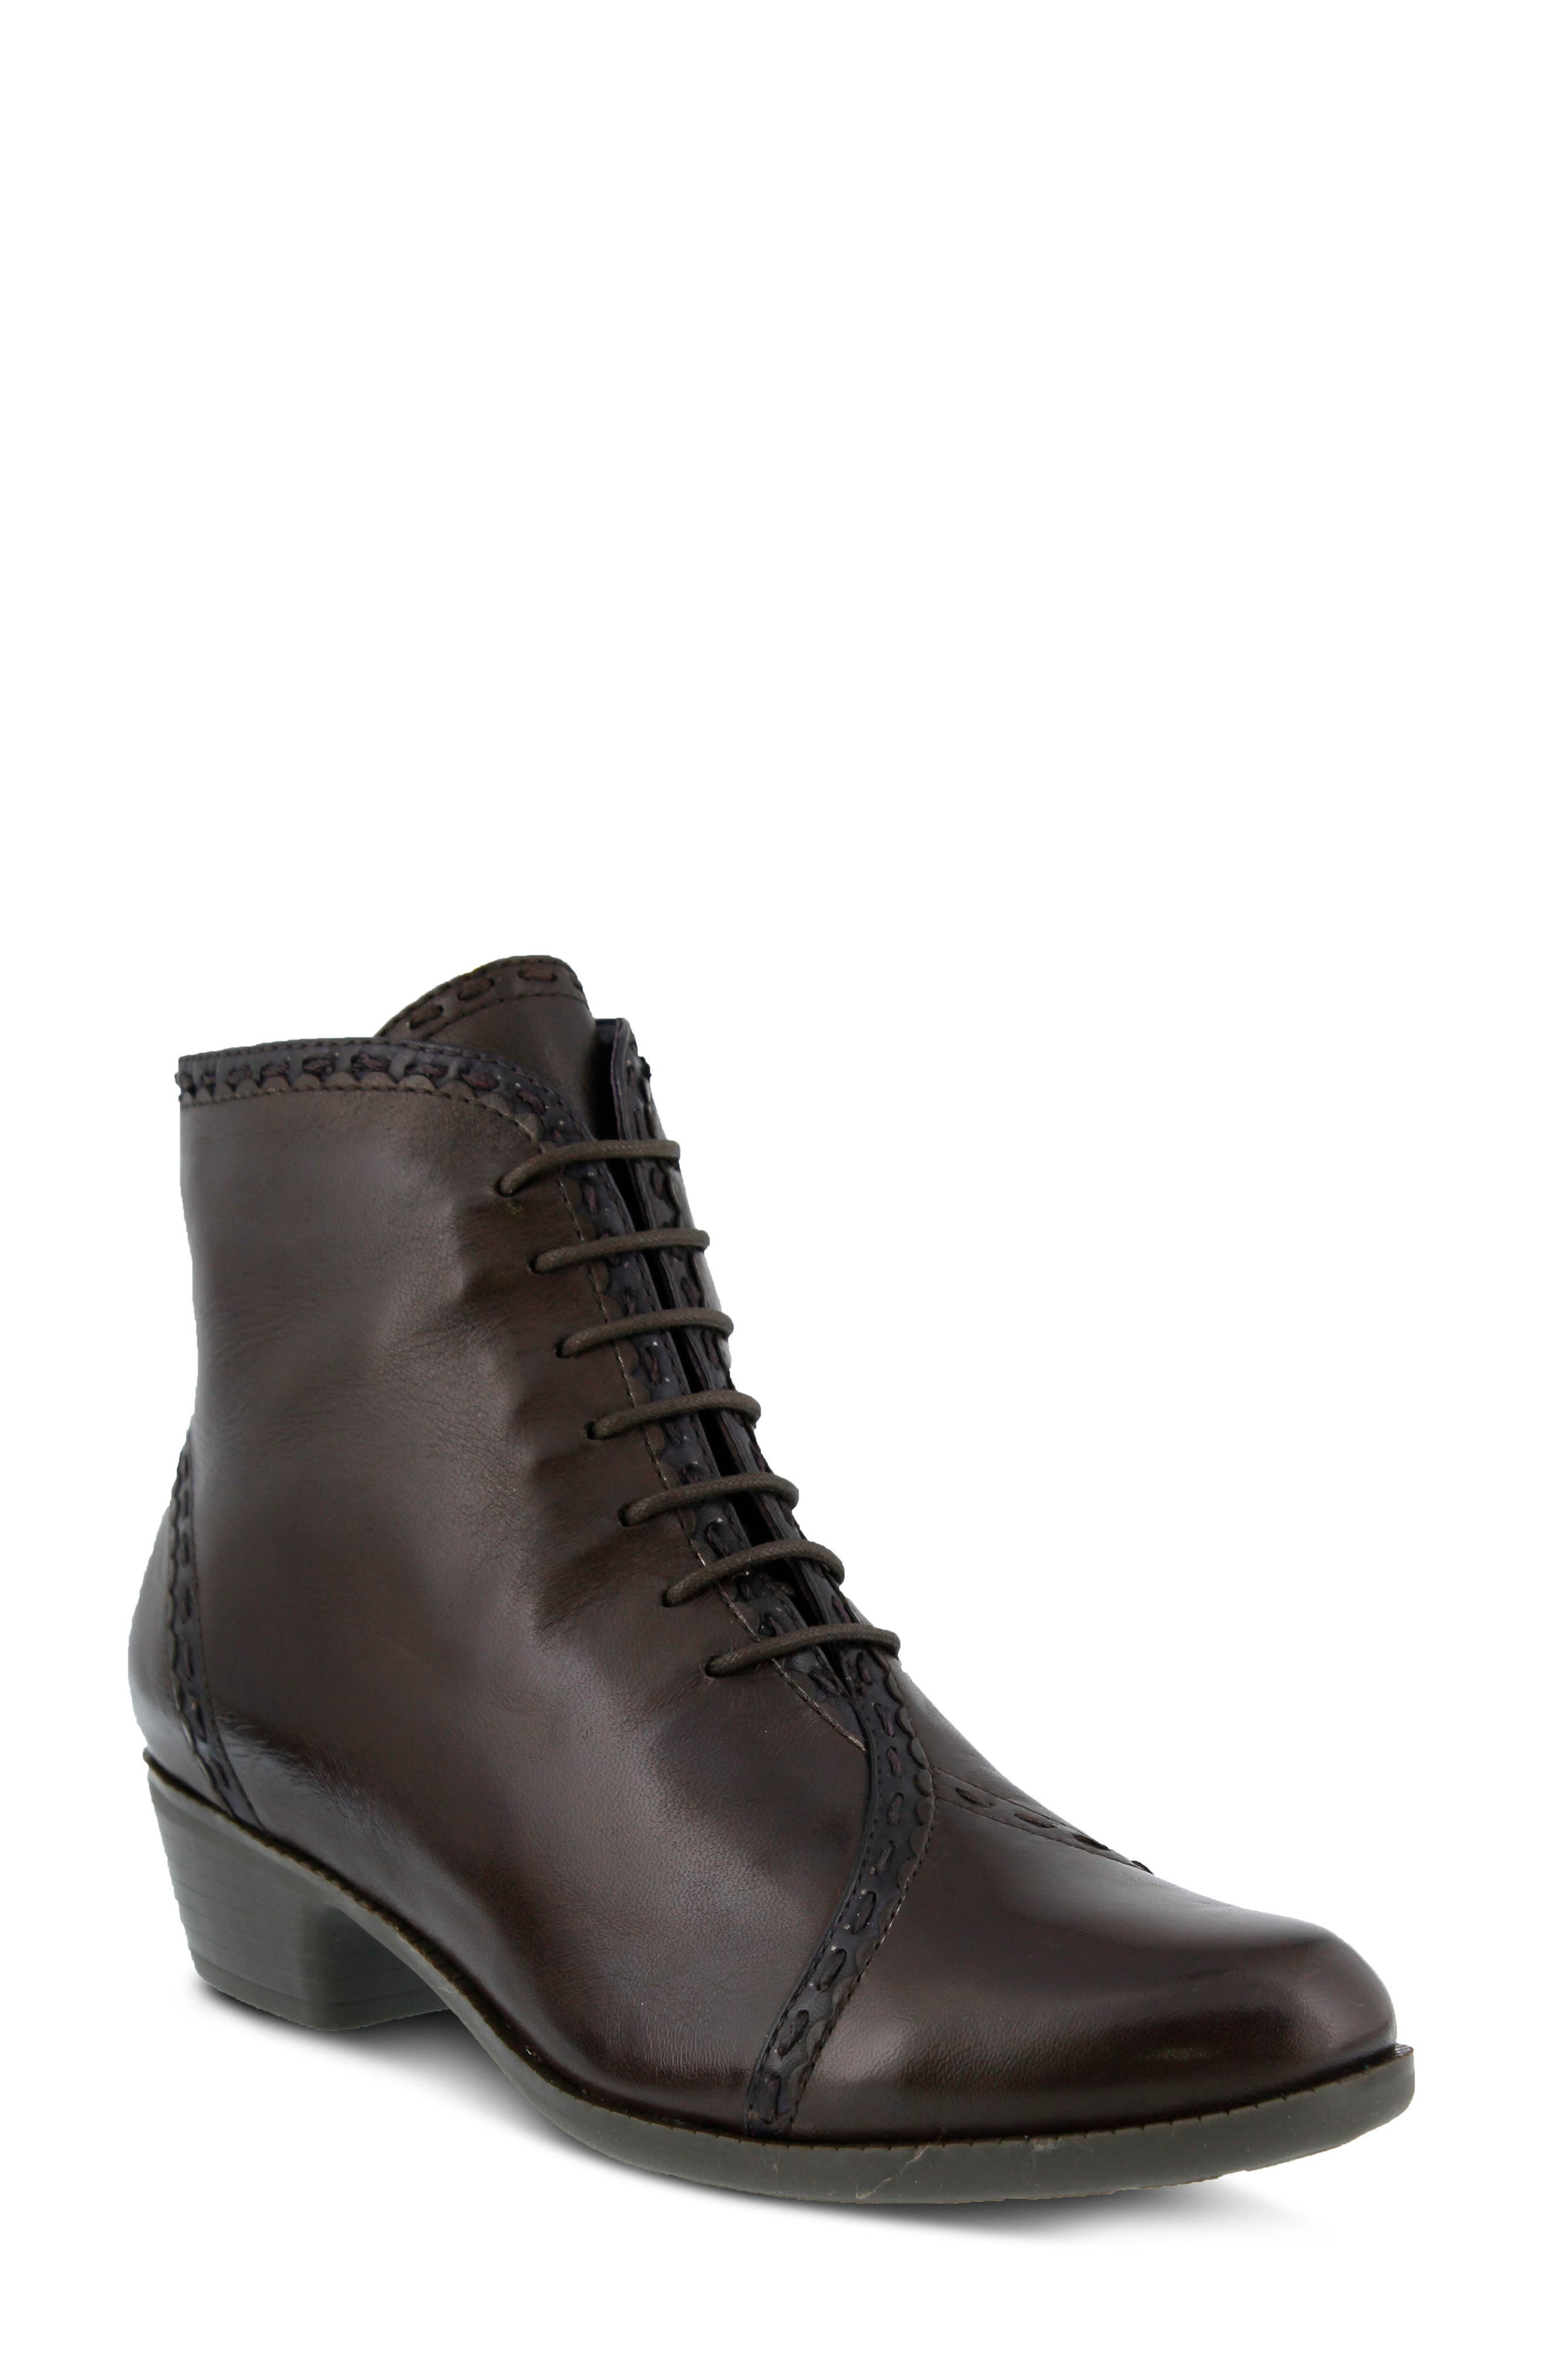 Jaru Lace-Up Bootie,                             Main thumbnail 1, color,                             Dark Brown Leather